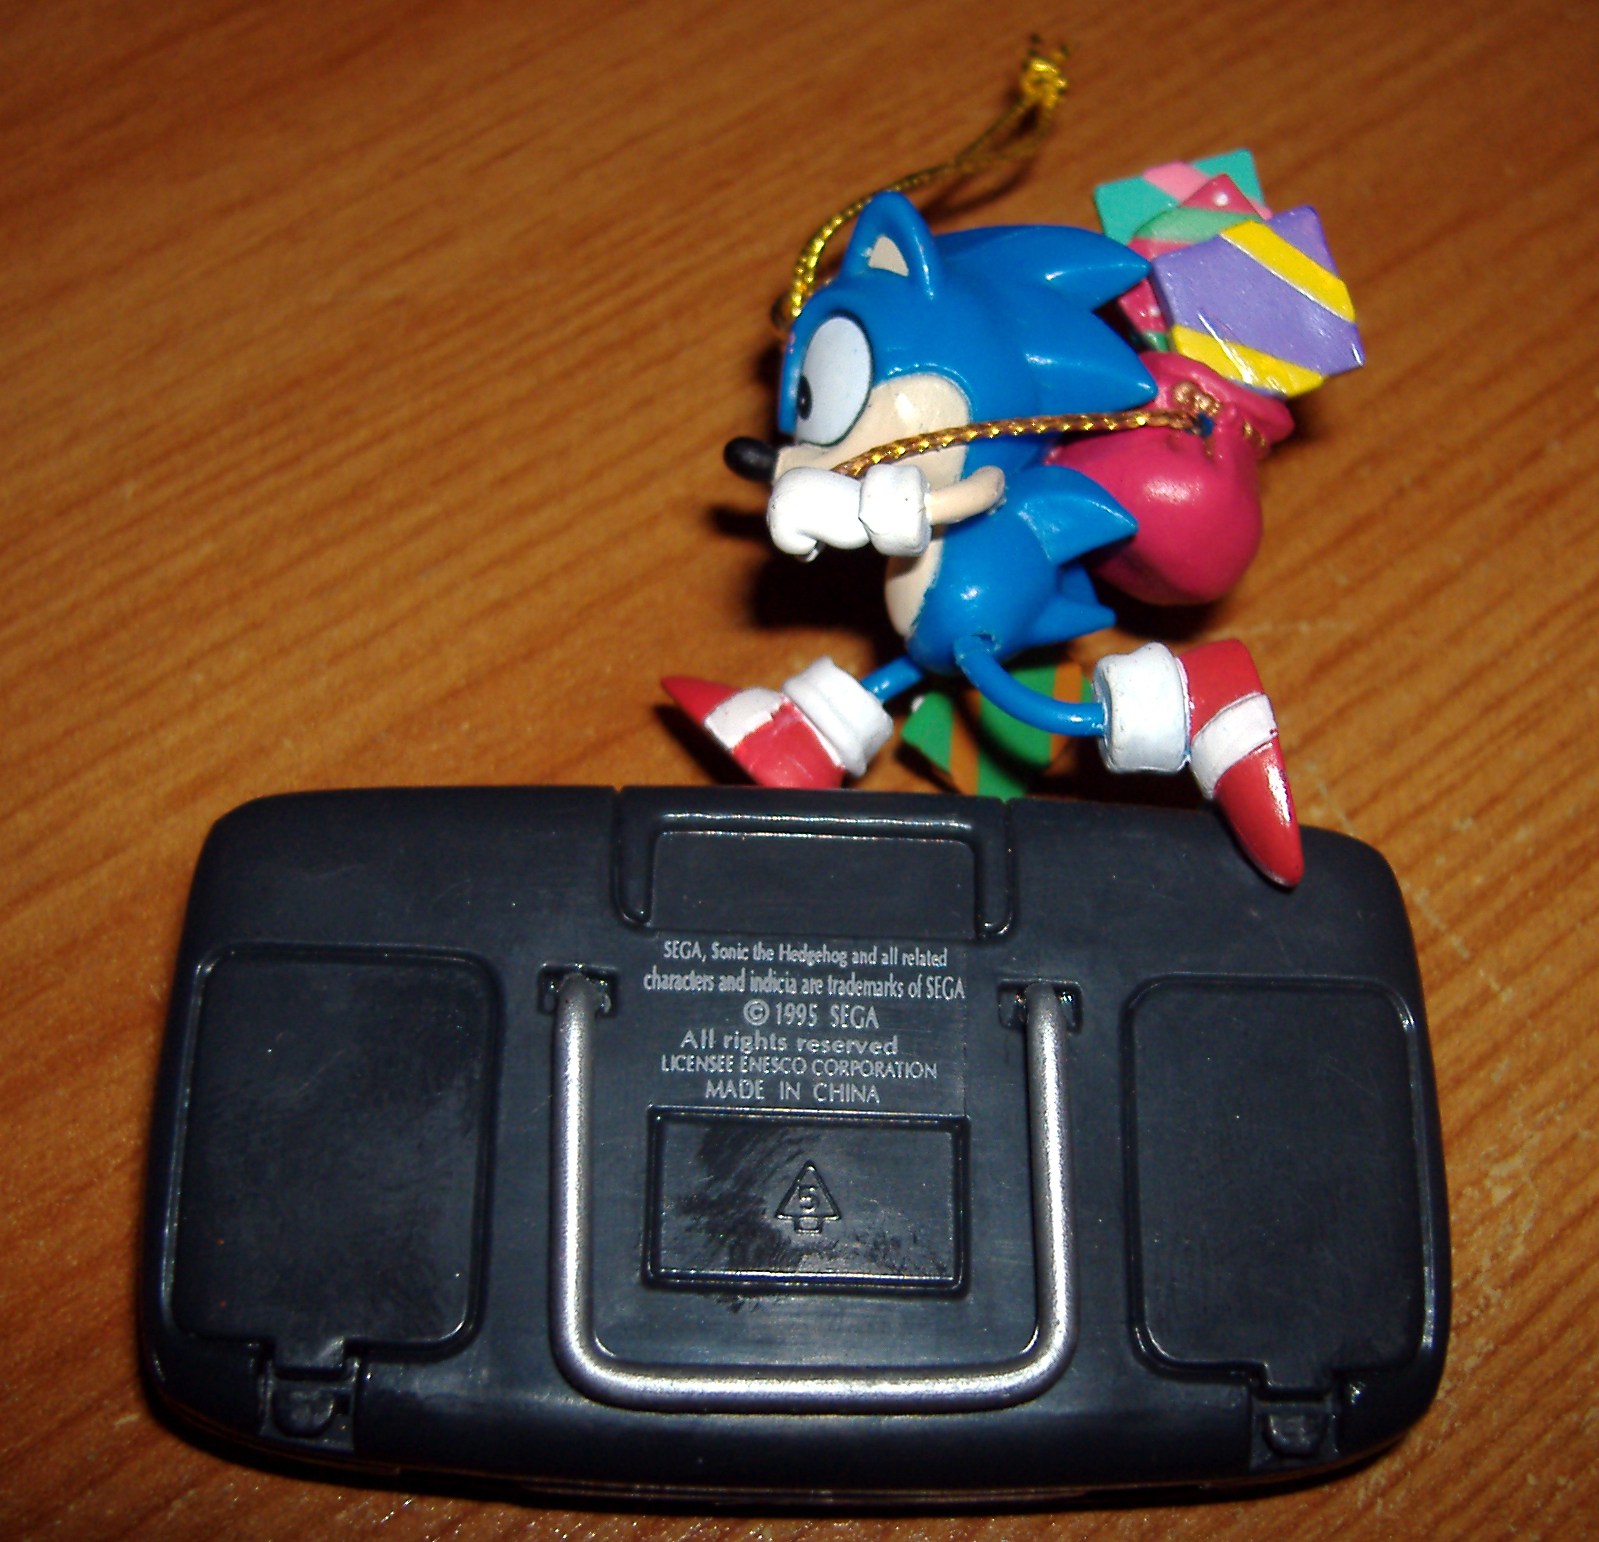 game gear colors : Sadly the battery compartment isn t real and doesn t contain ultra rare fake chinese sega batteries it s probably for the best they would trigger a